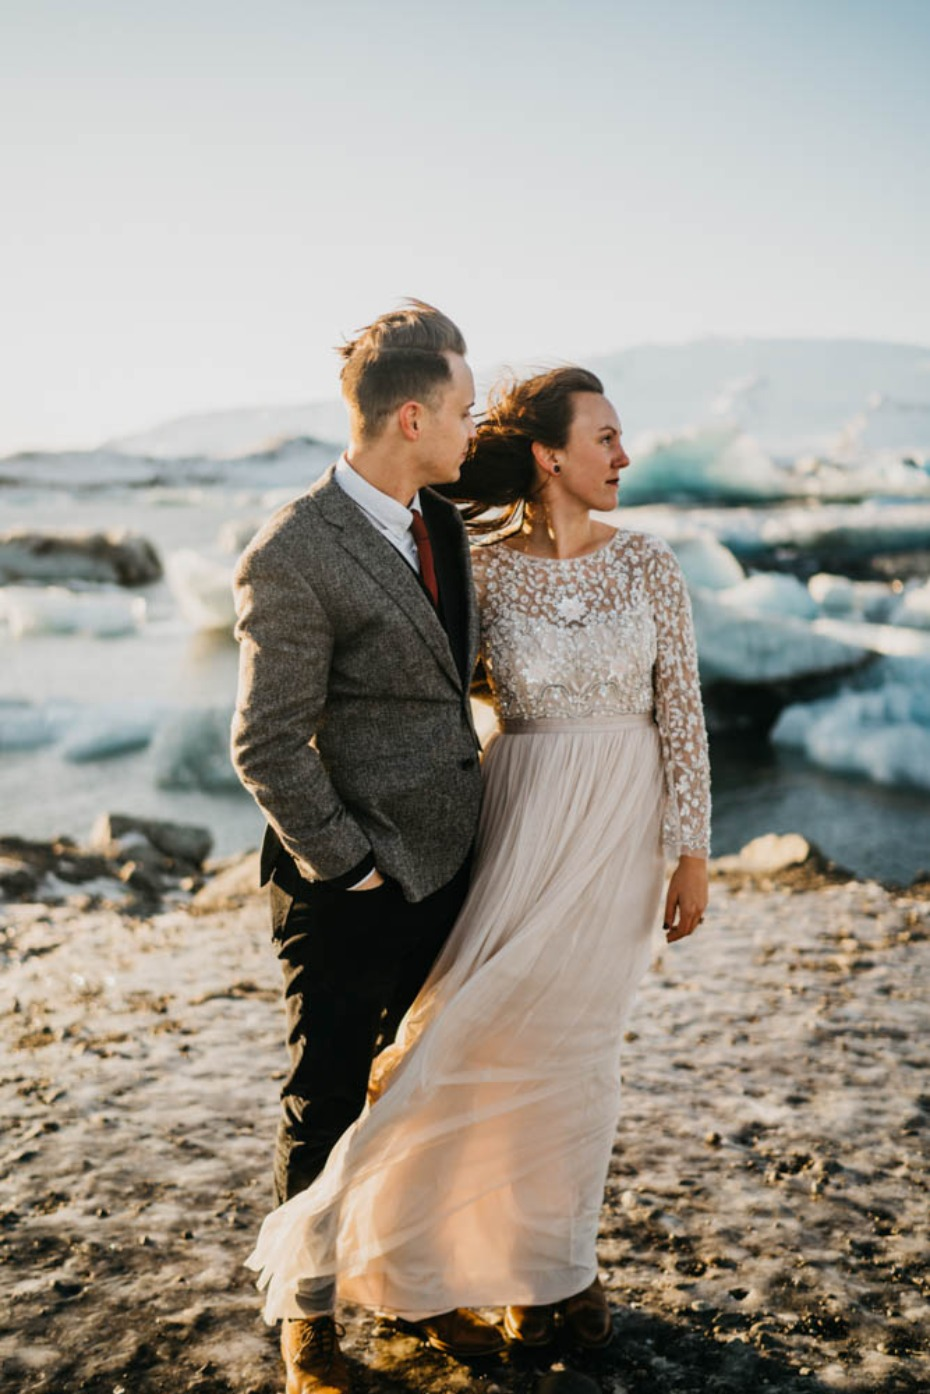 Beautiful elopement in Iceland